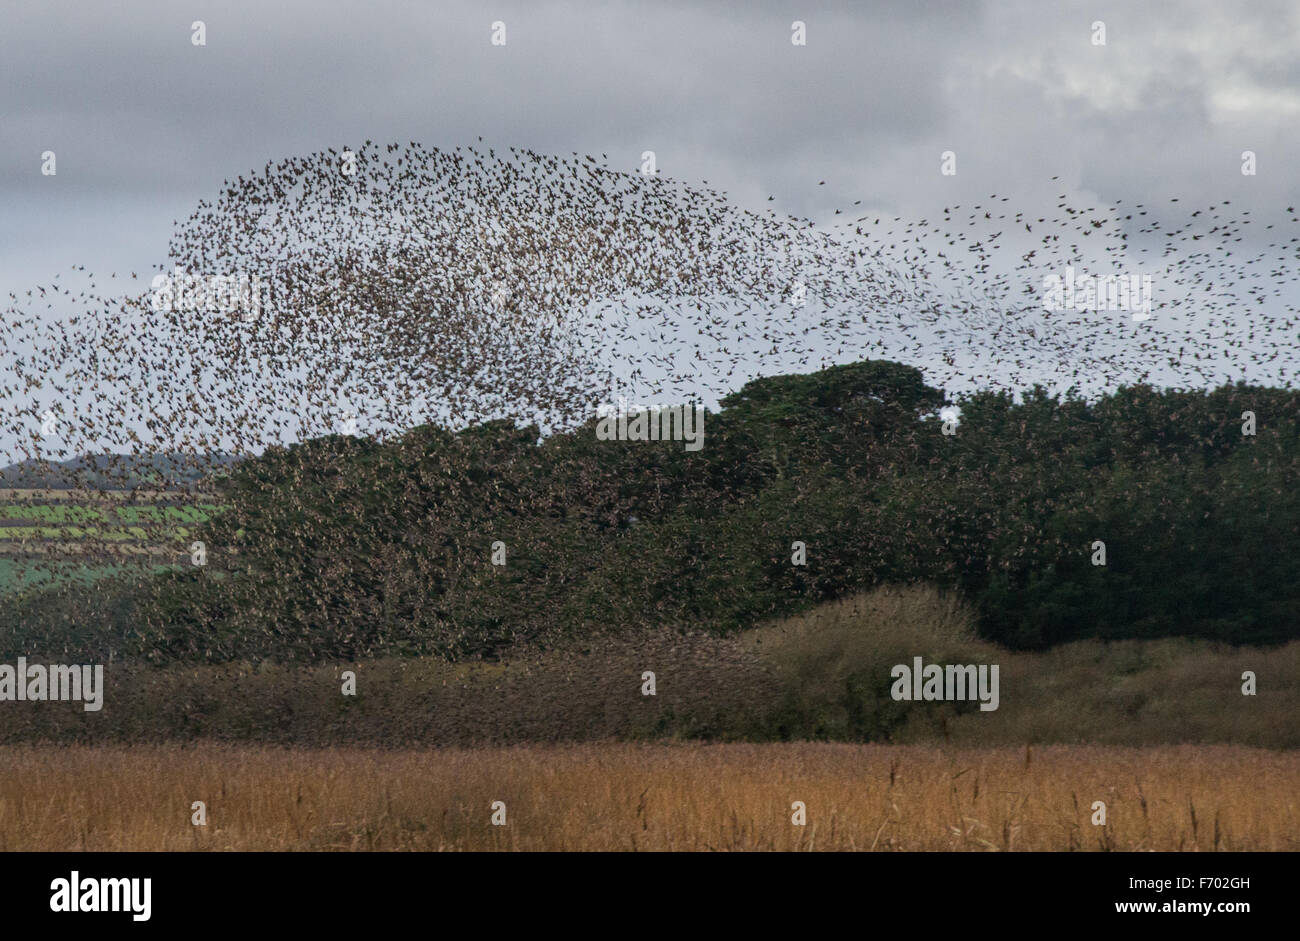 Marazion, Cornwall, UK. 22nd November 2015. Tens of thousands of Starlings coming in to evening roost in the reed - Stock Image